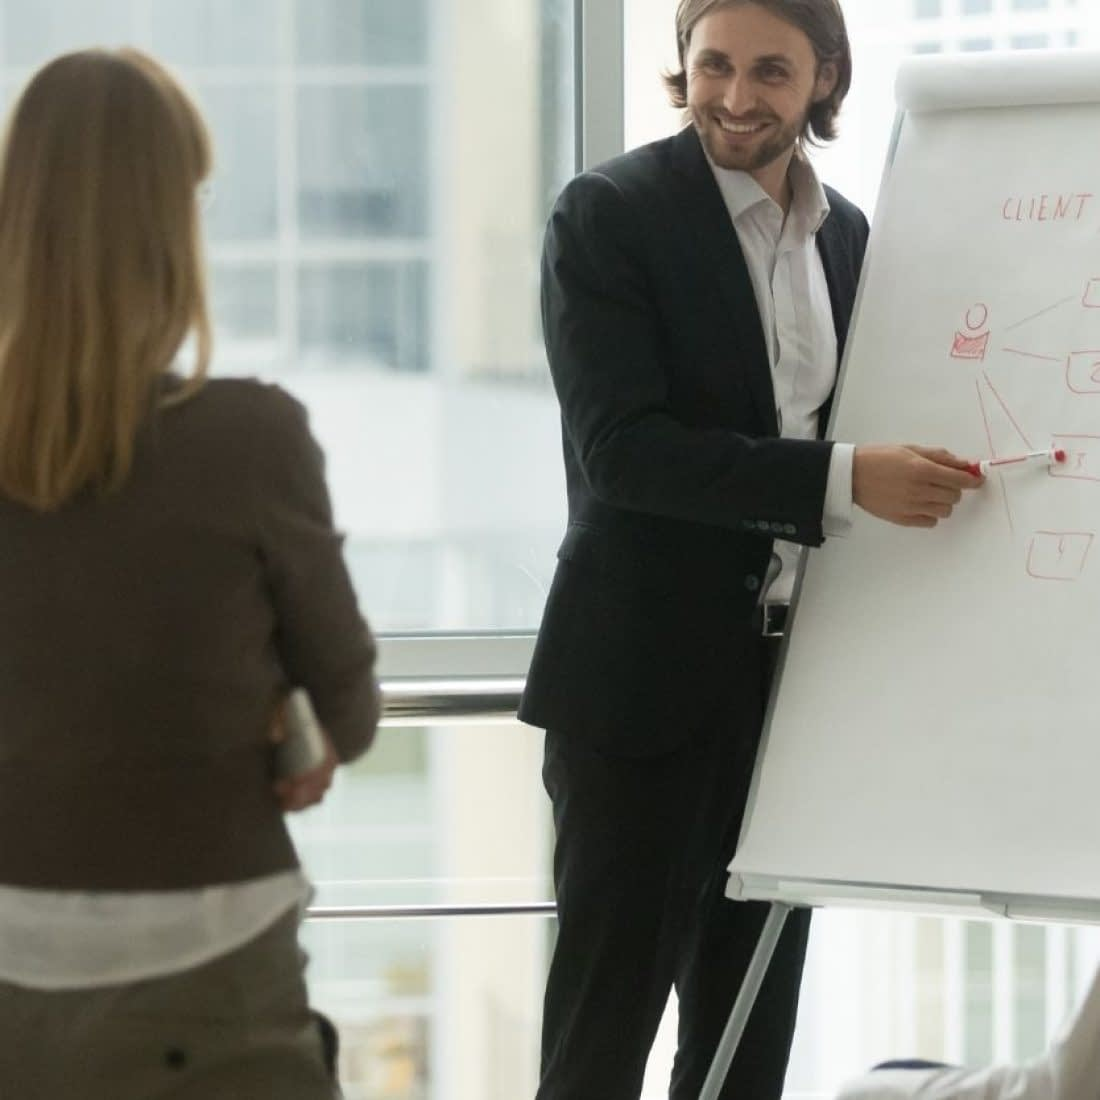 Man at whiteboard with clients